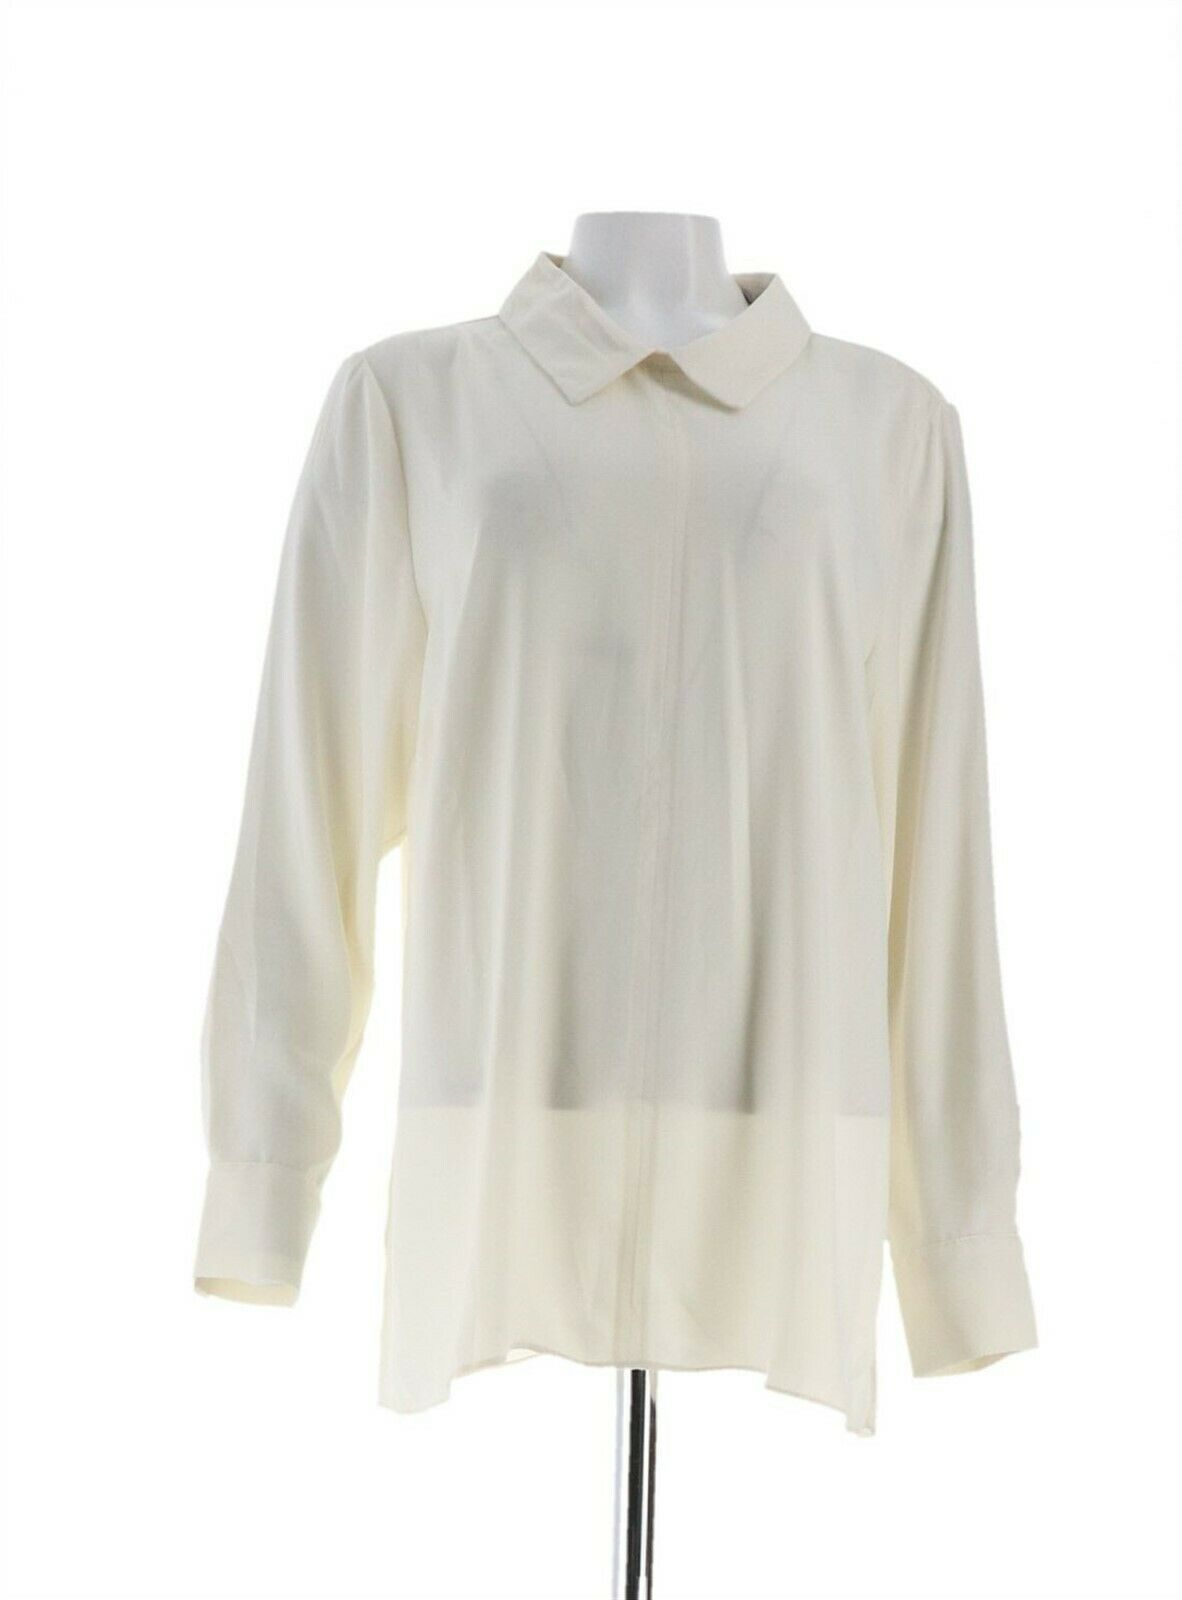 Primary image for Martha Stewart Woven Collared Blouse Back Button Heavy Cream XL NEW A342525